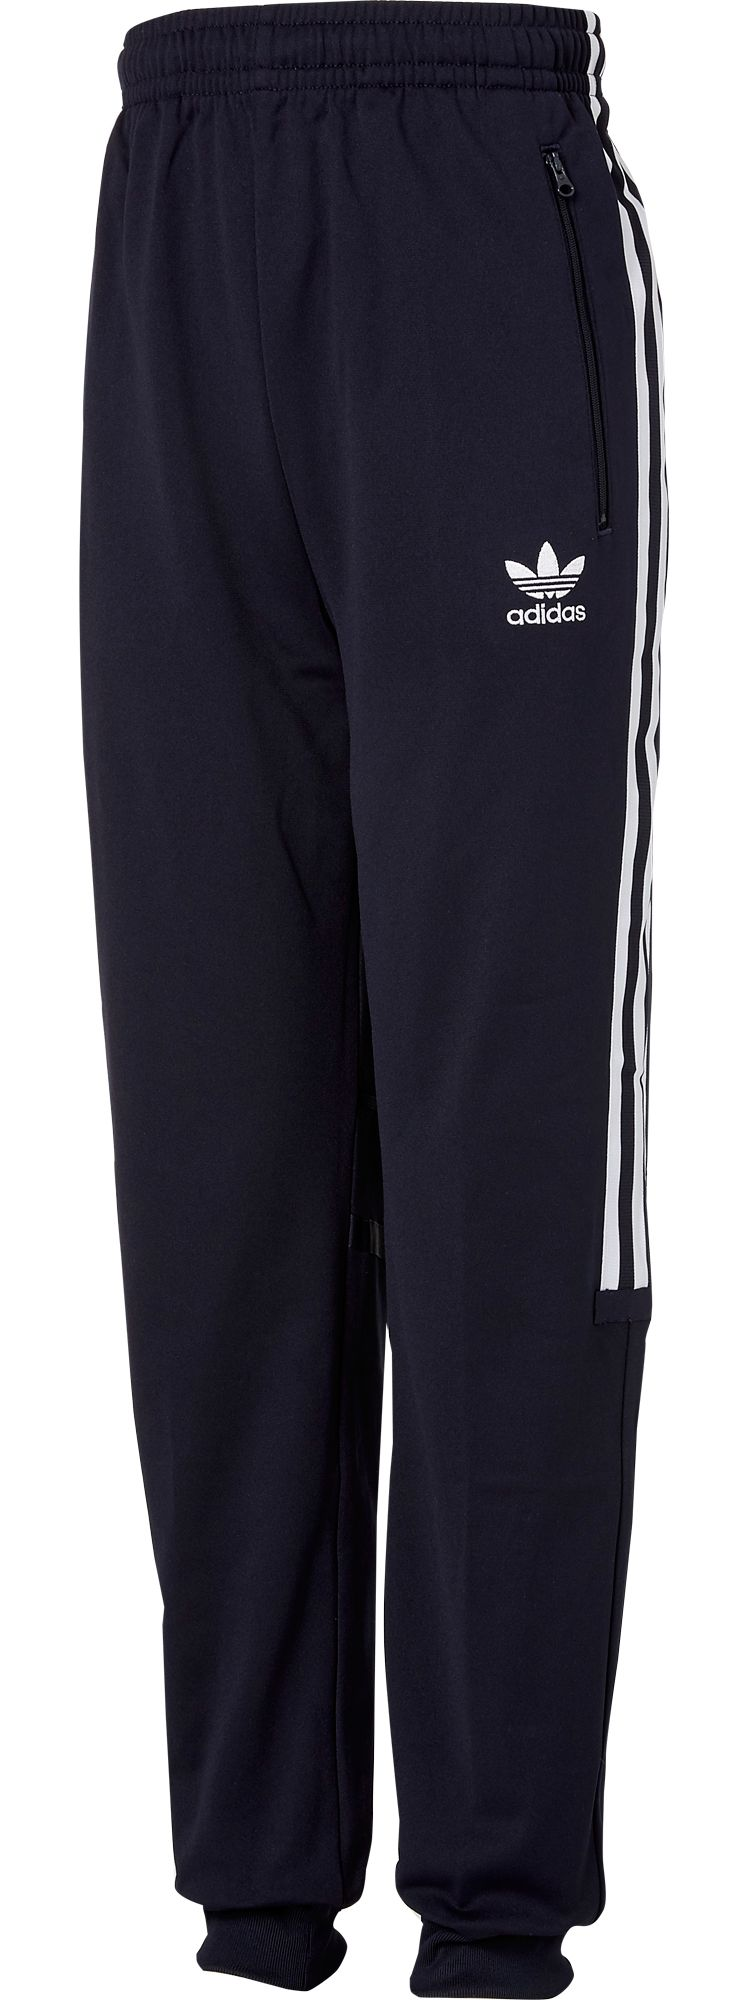 kids adidas soccer pants